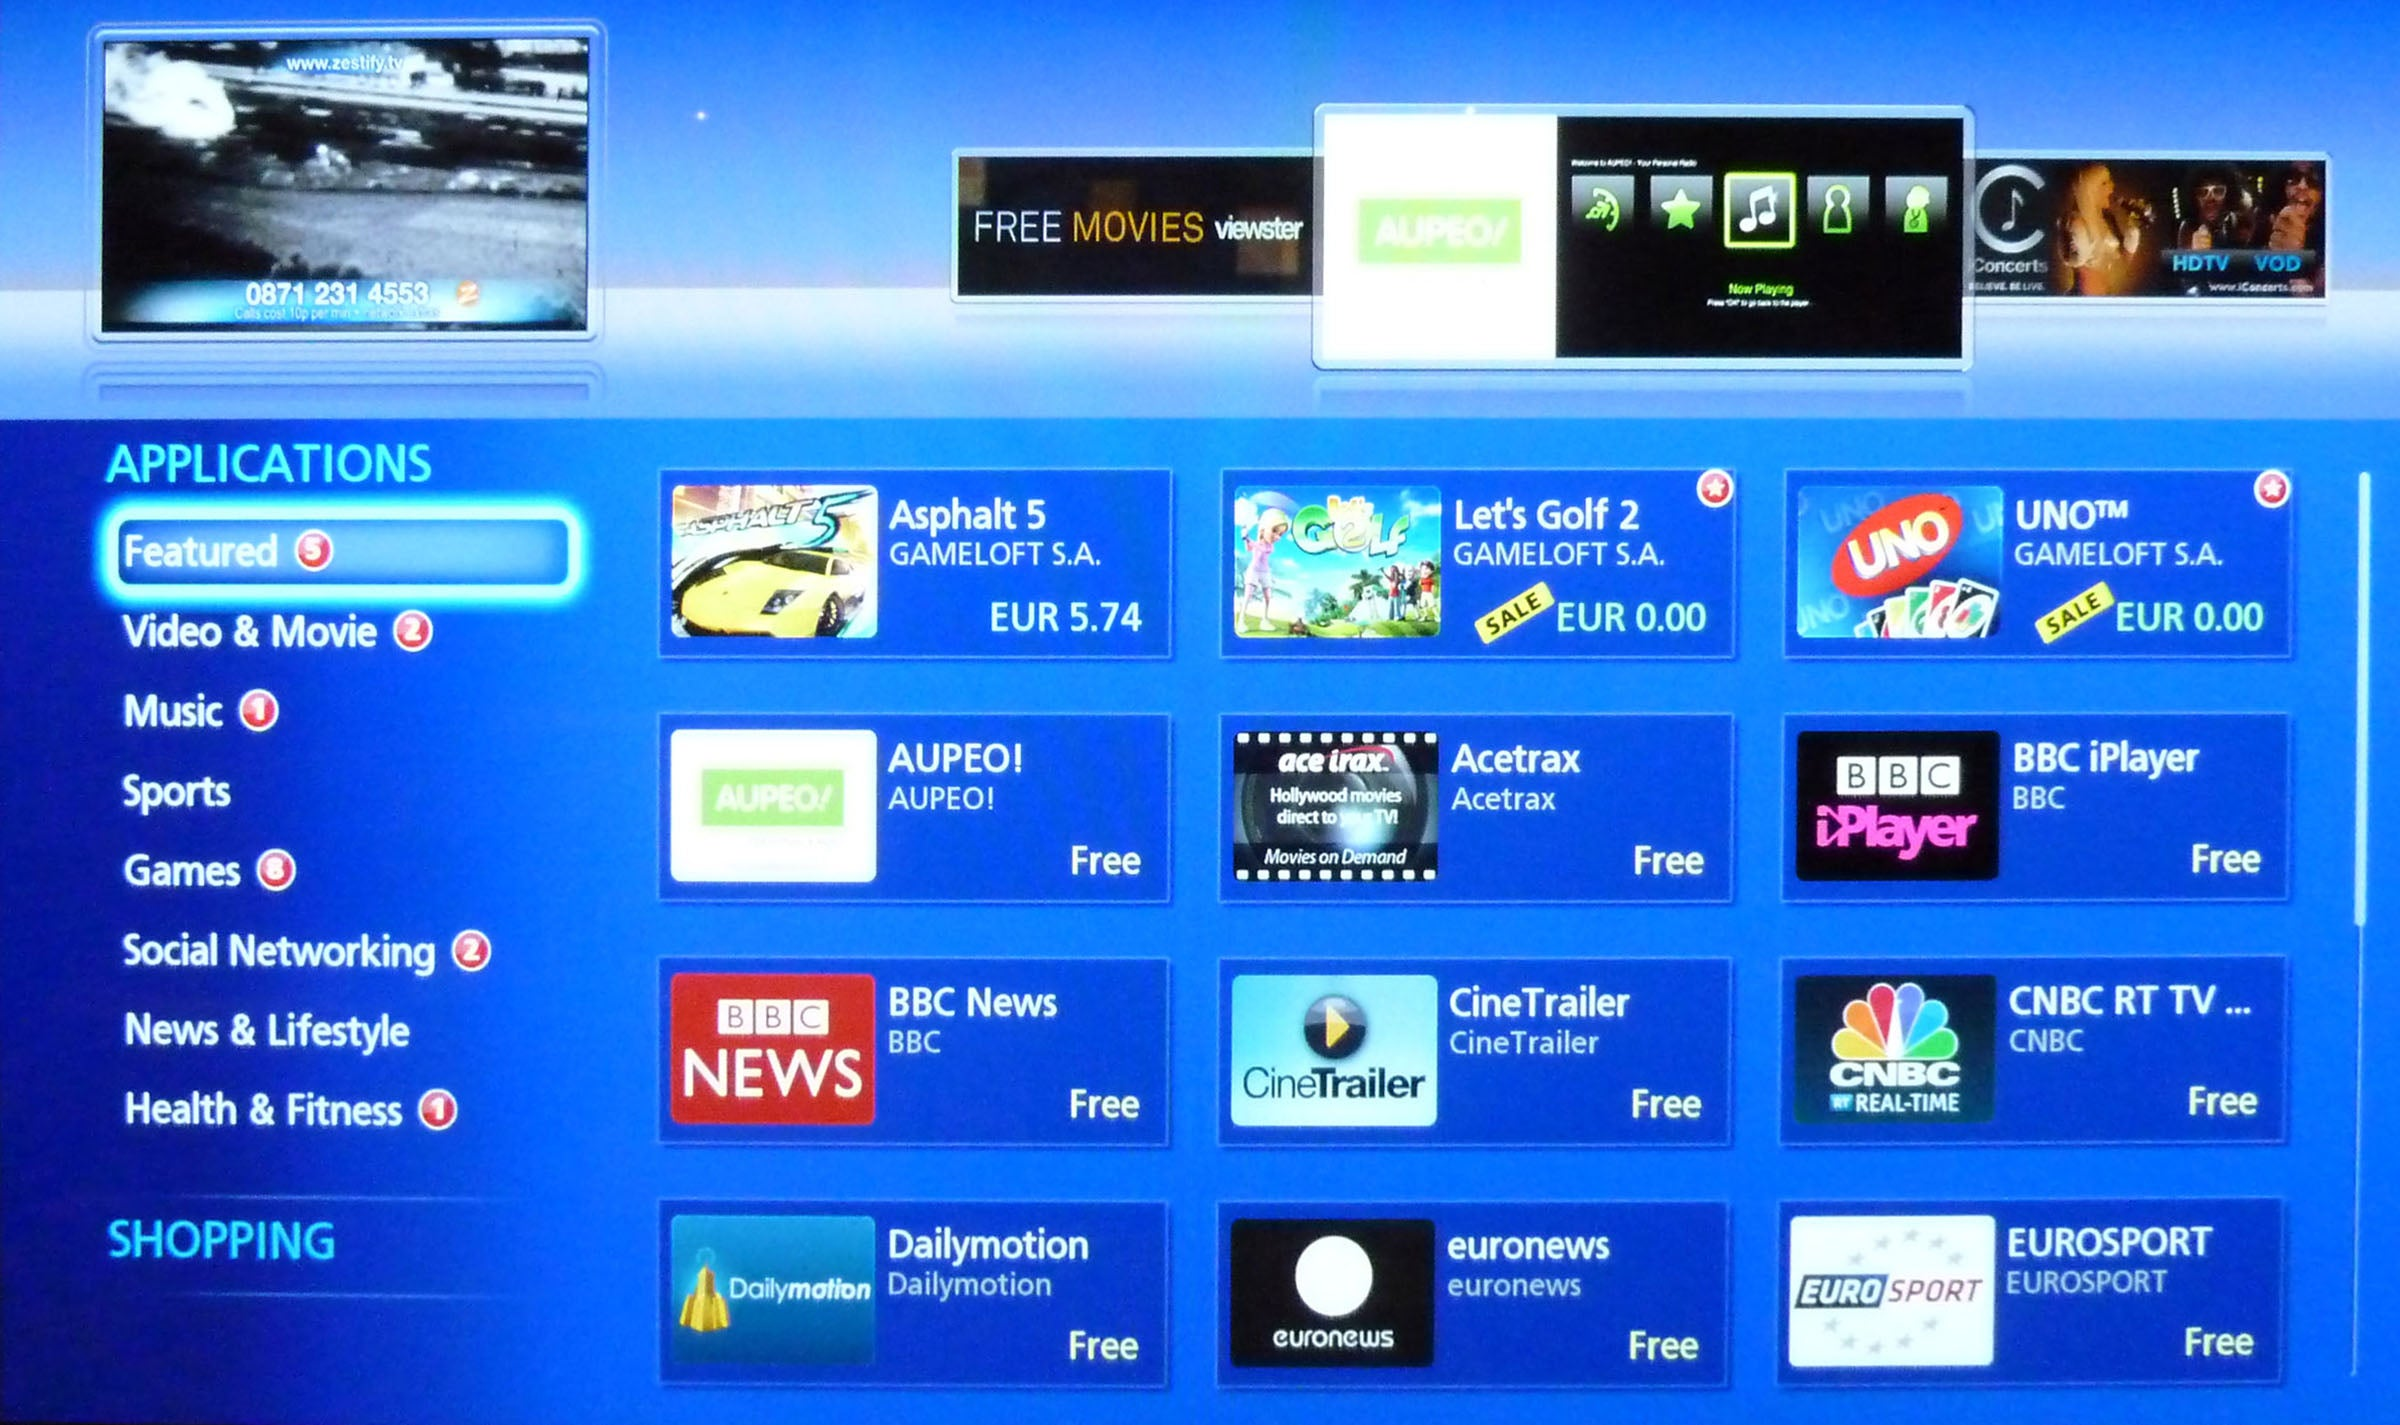 Panasonic Smart Tv Iphone App